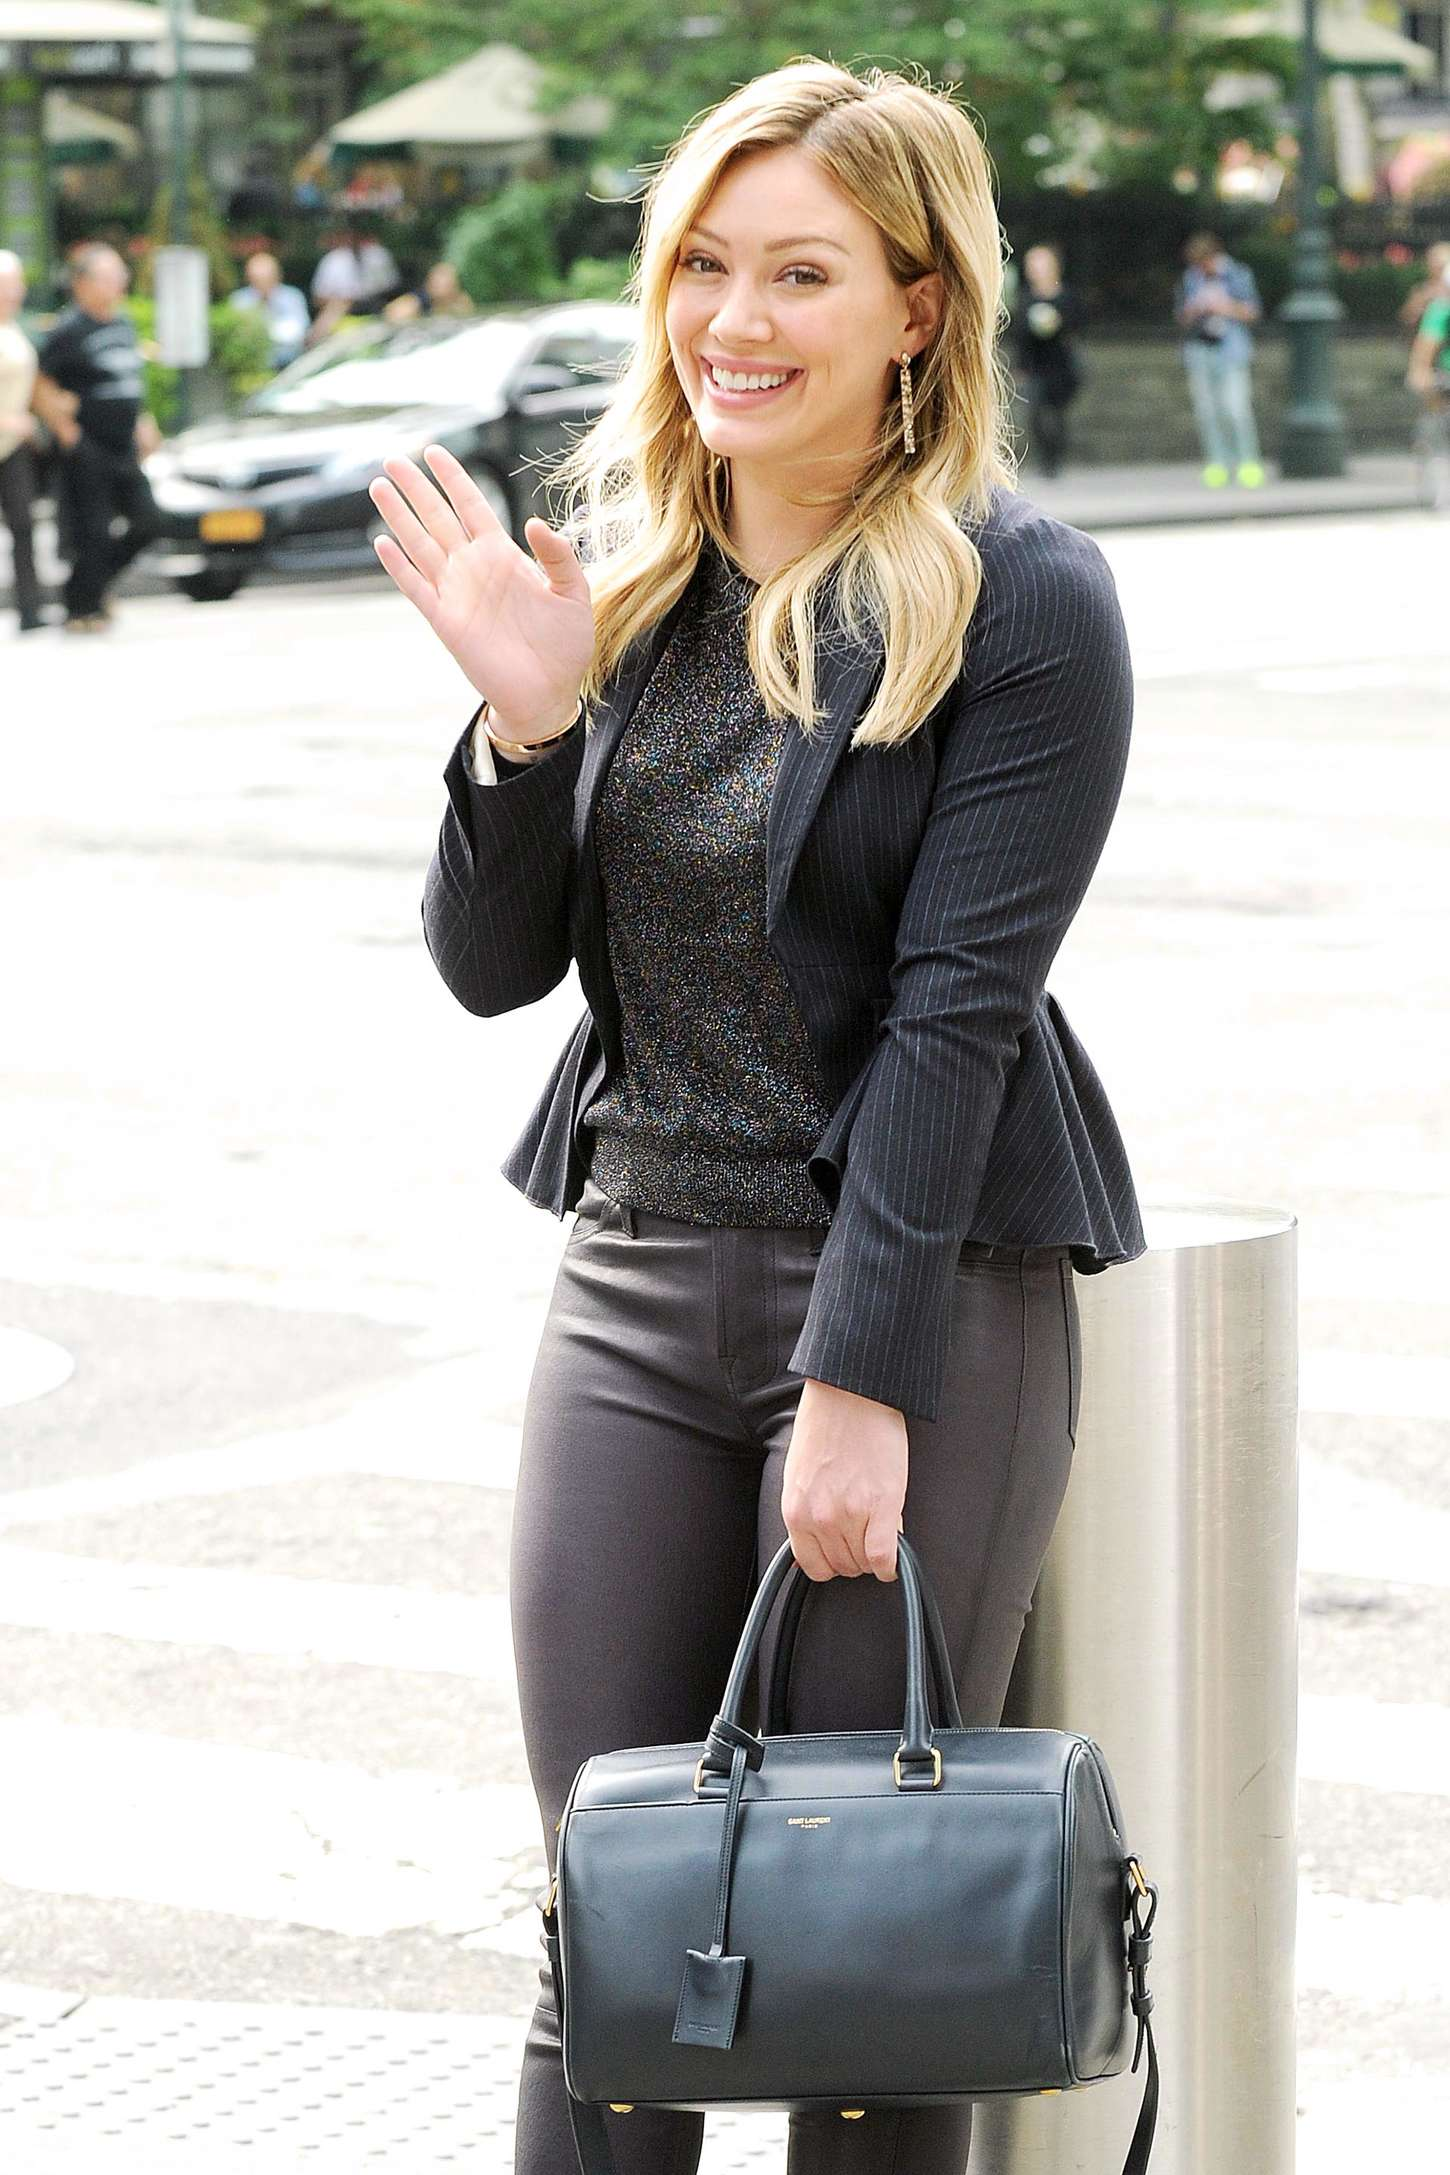 Hilary Duff In Leather Pants On Younger Set 01 Gotceleb